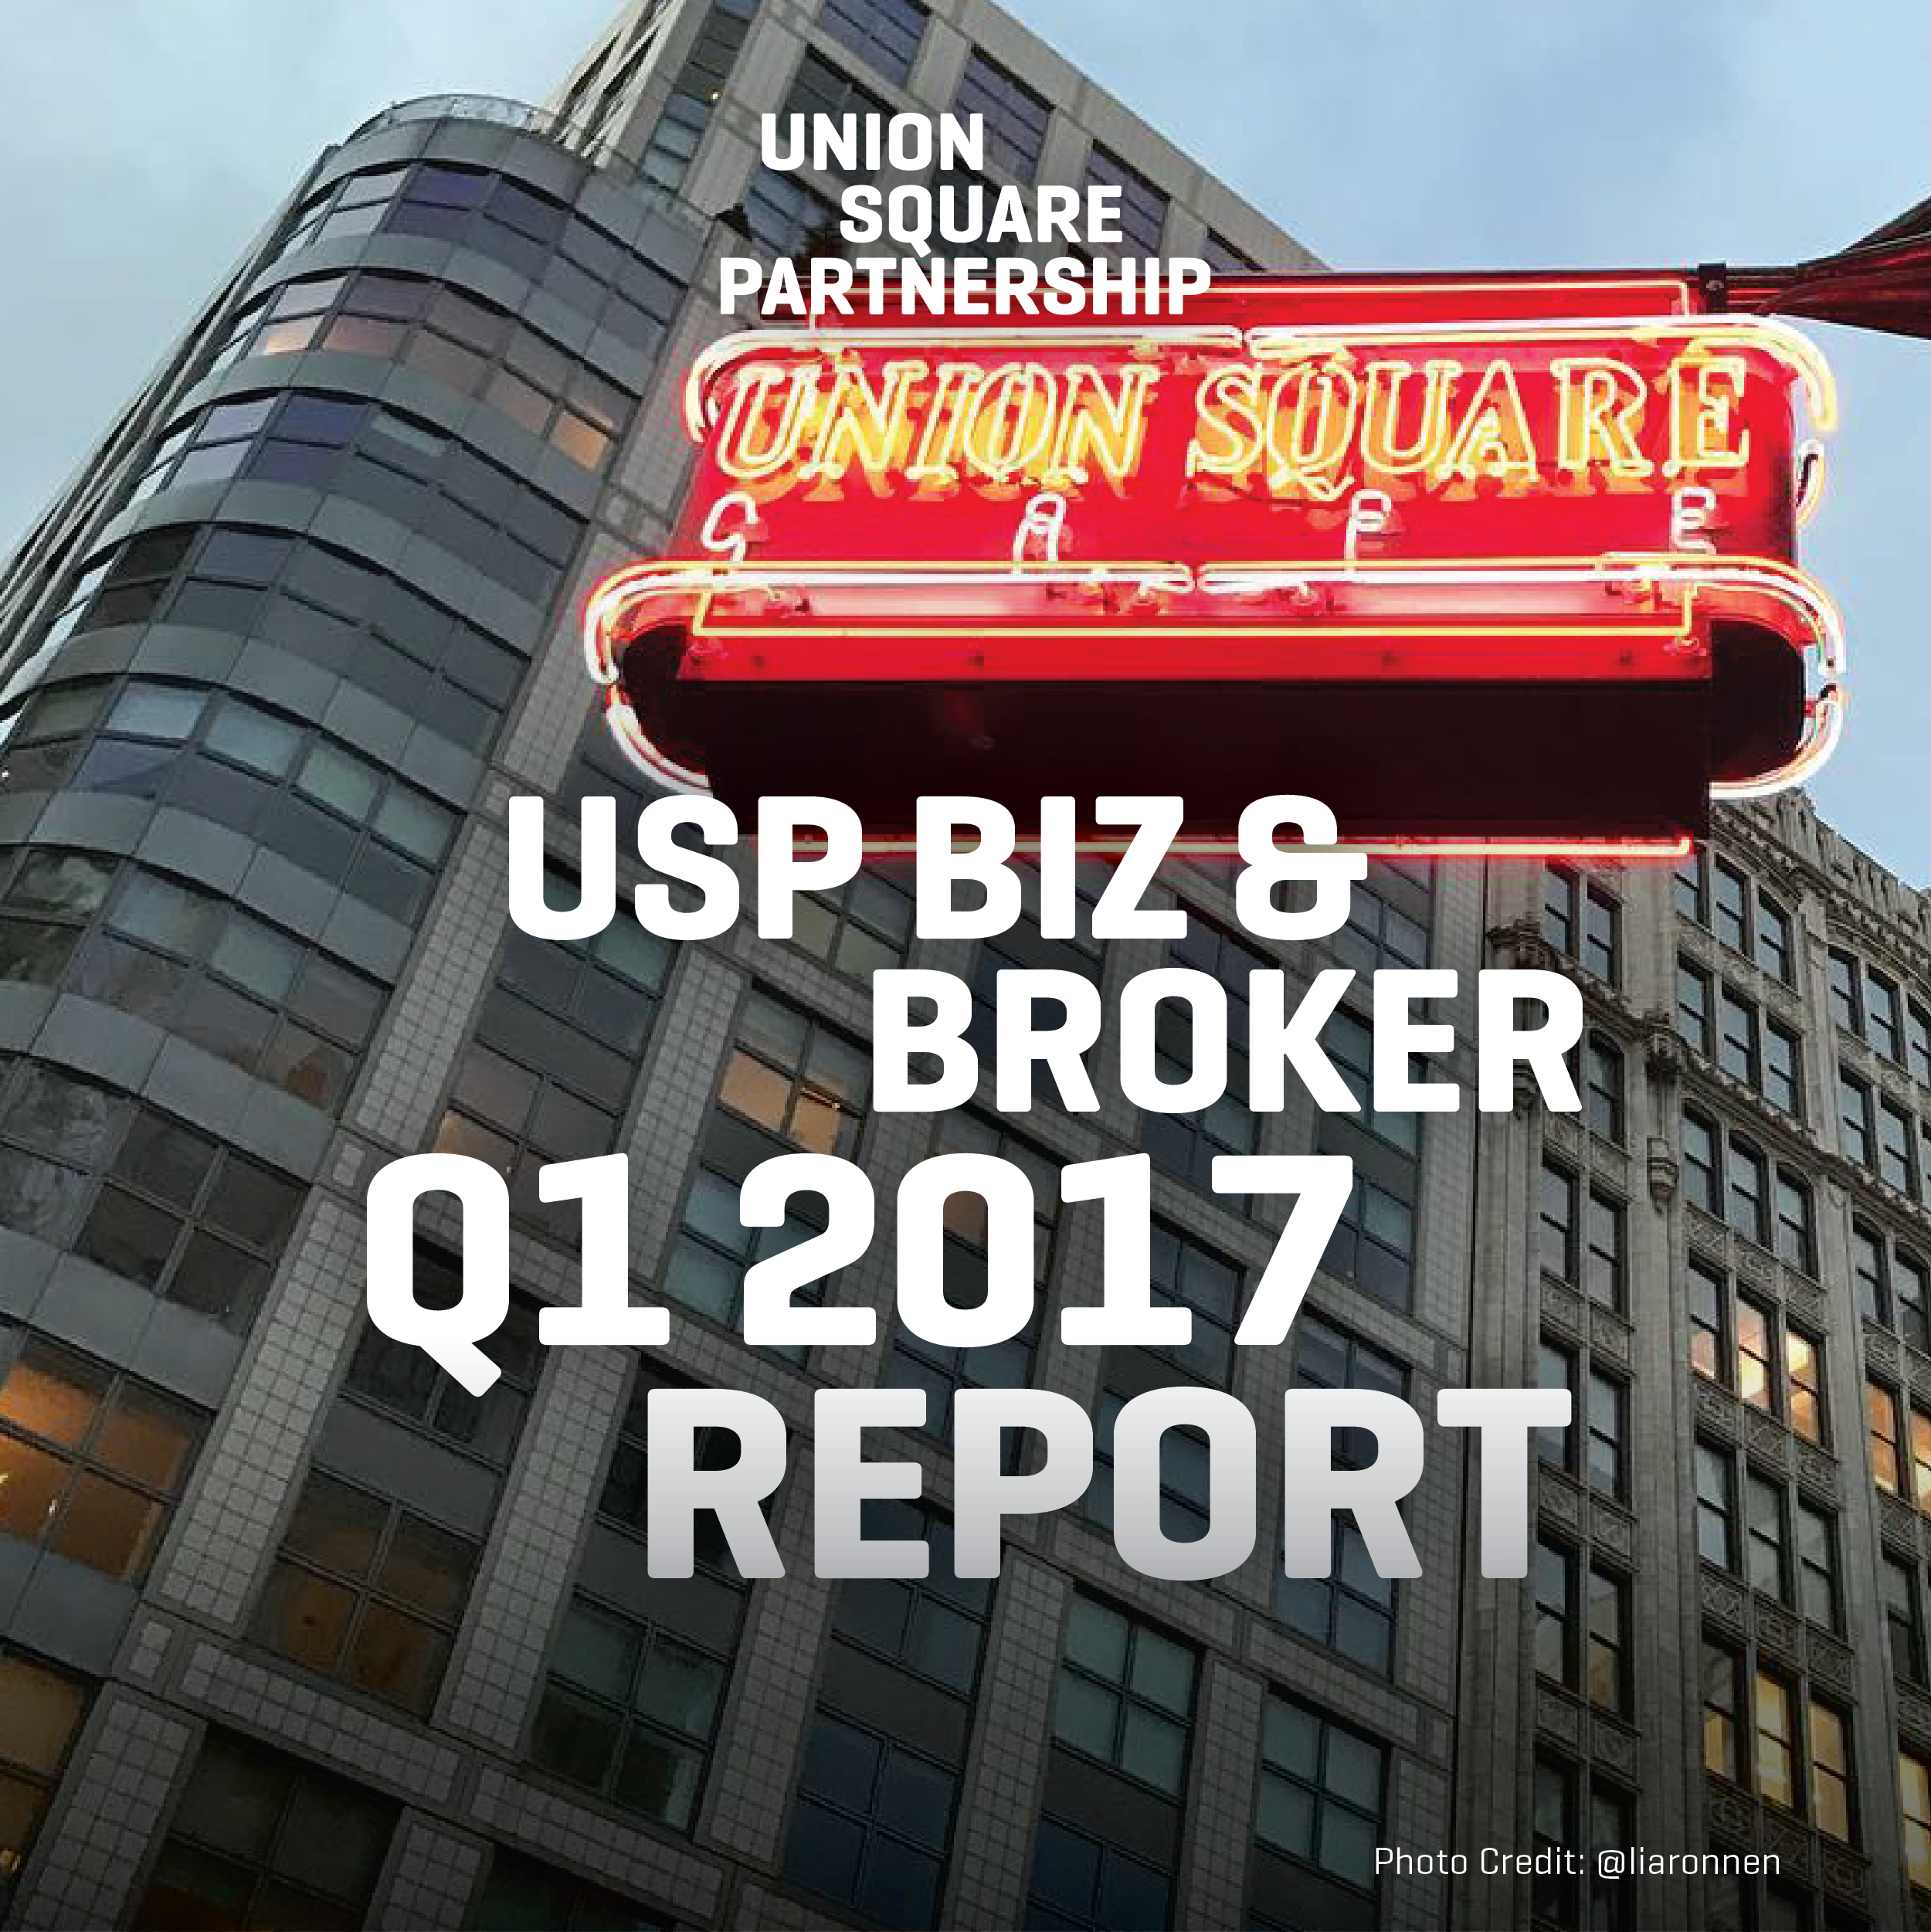 Q1 Biz & Broker 2017 Report